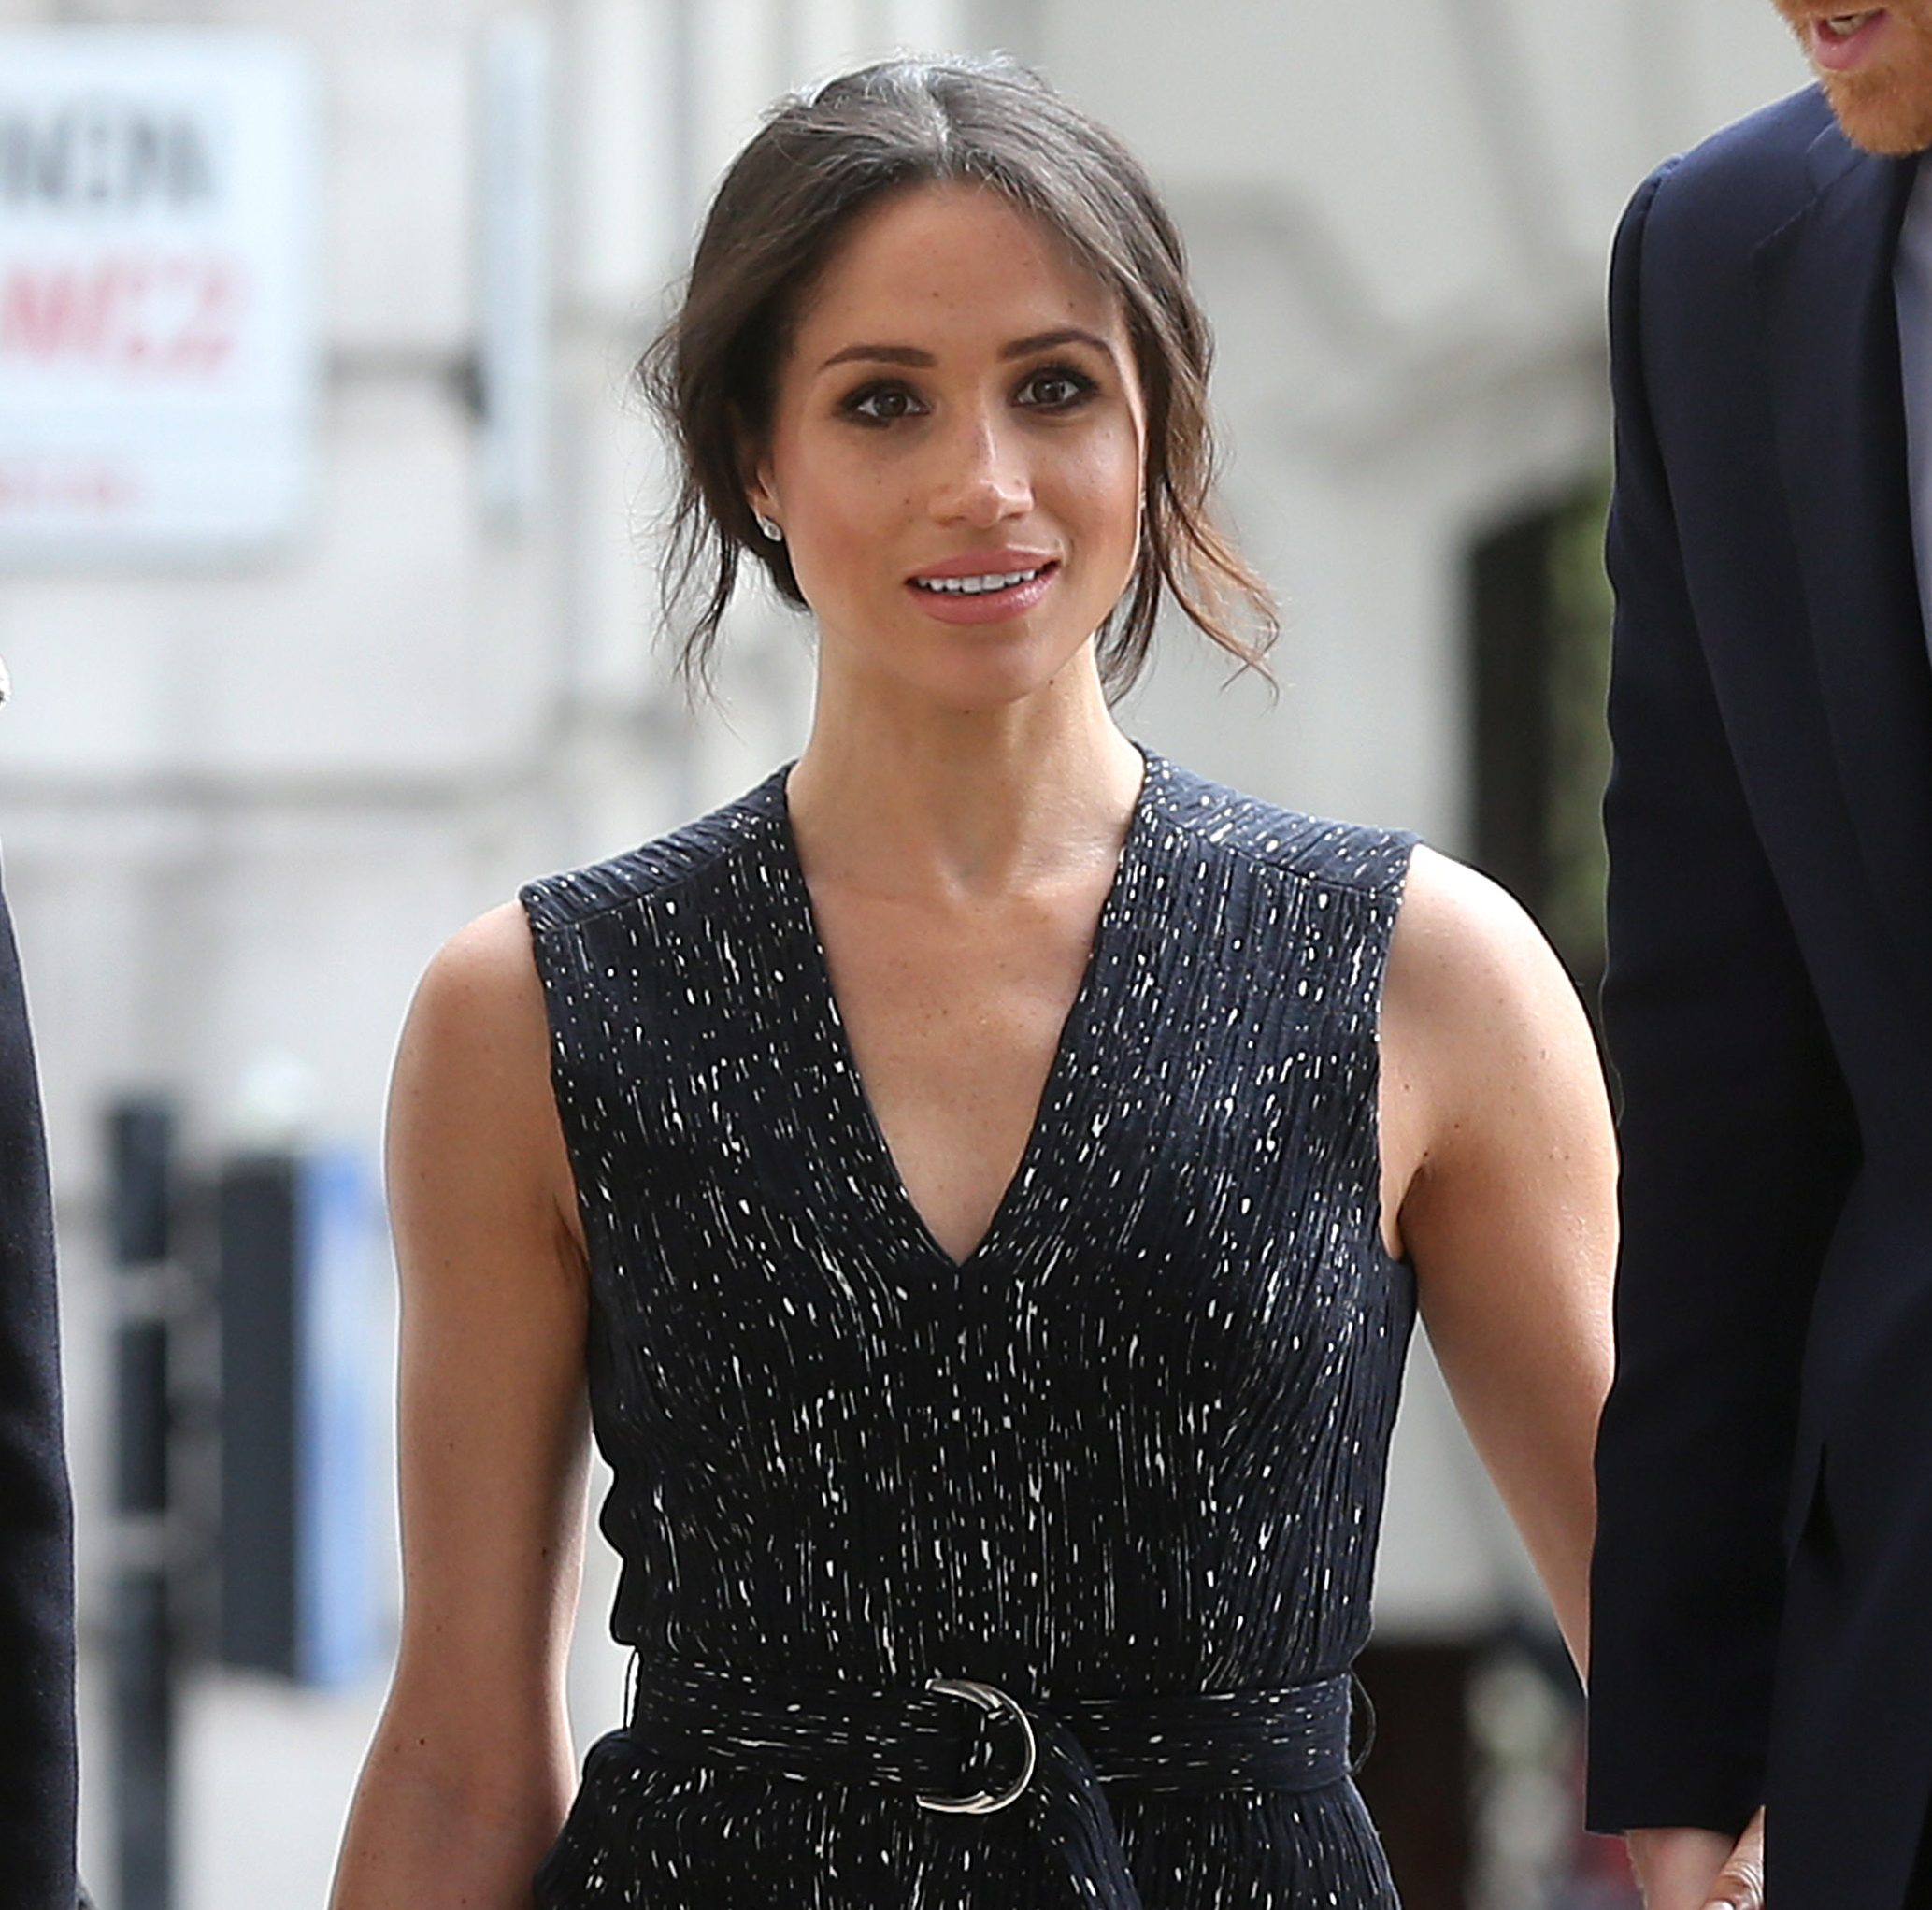 Duchess of Sussex's estranged sister lashes out at her again